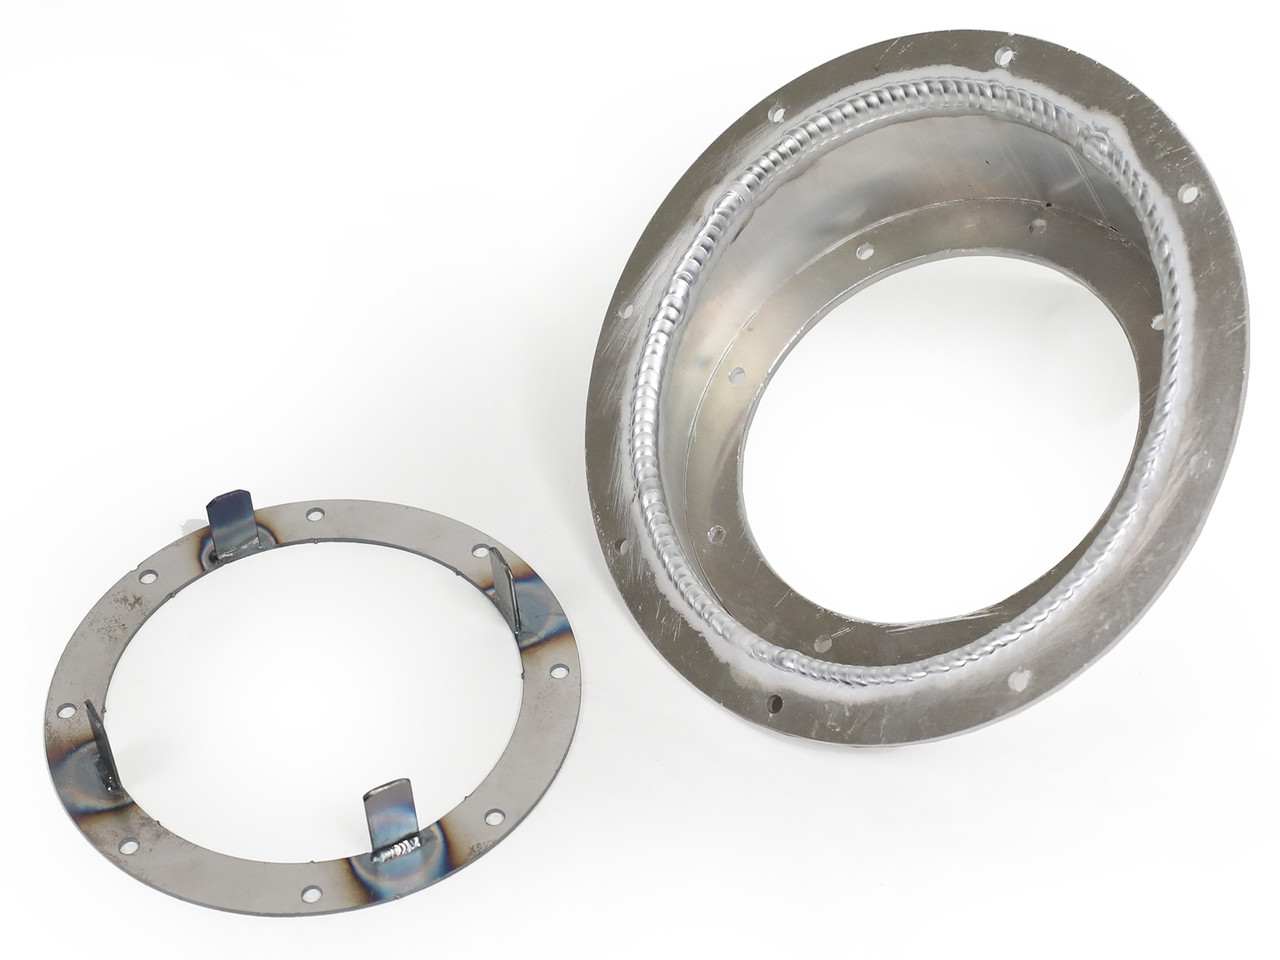 GenRight's aluminum fuel filler bezel